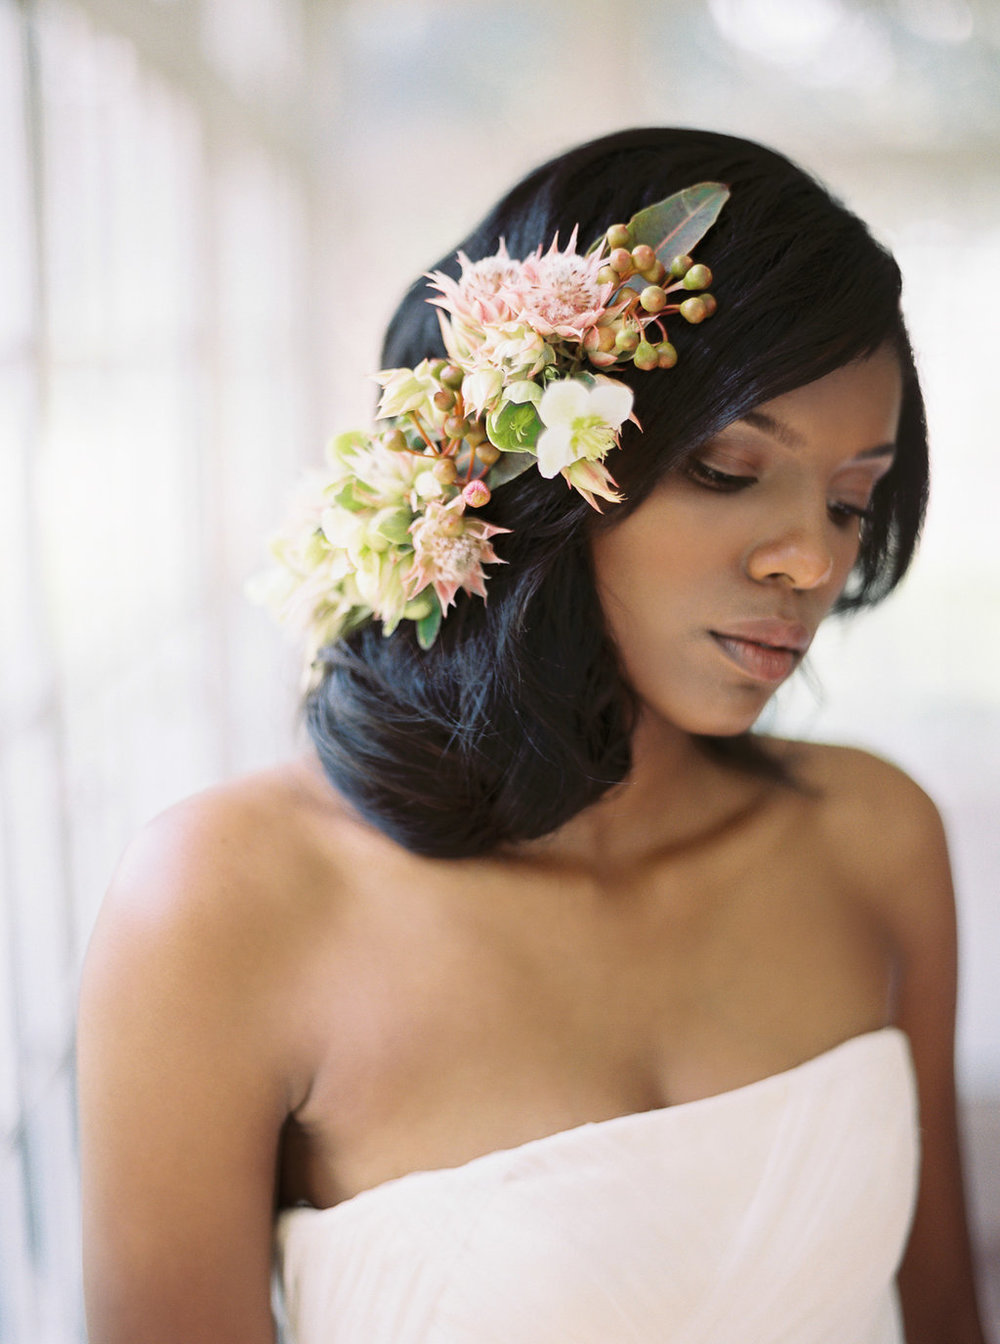 flower crown headpiece | follow us on instagram: @ thewildflowers_com